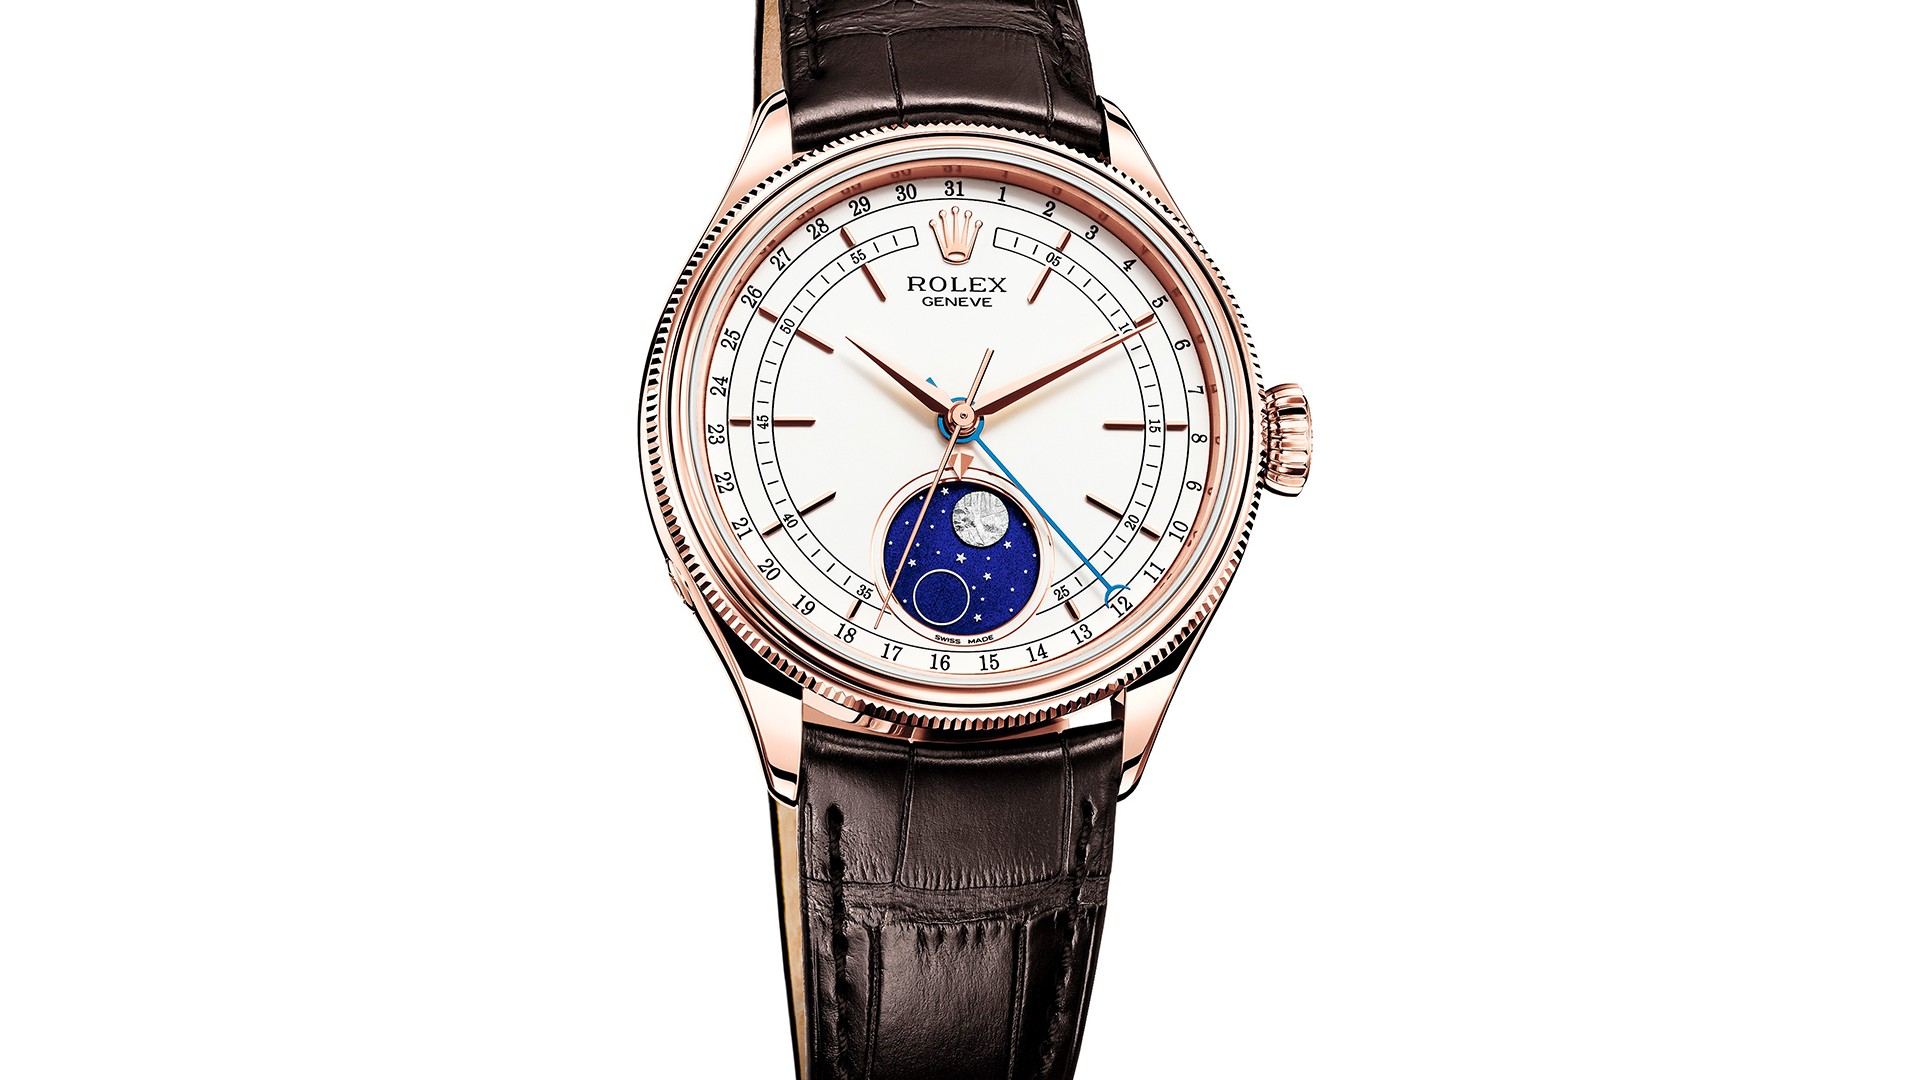 Rolex Cellini Moonphase watch